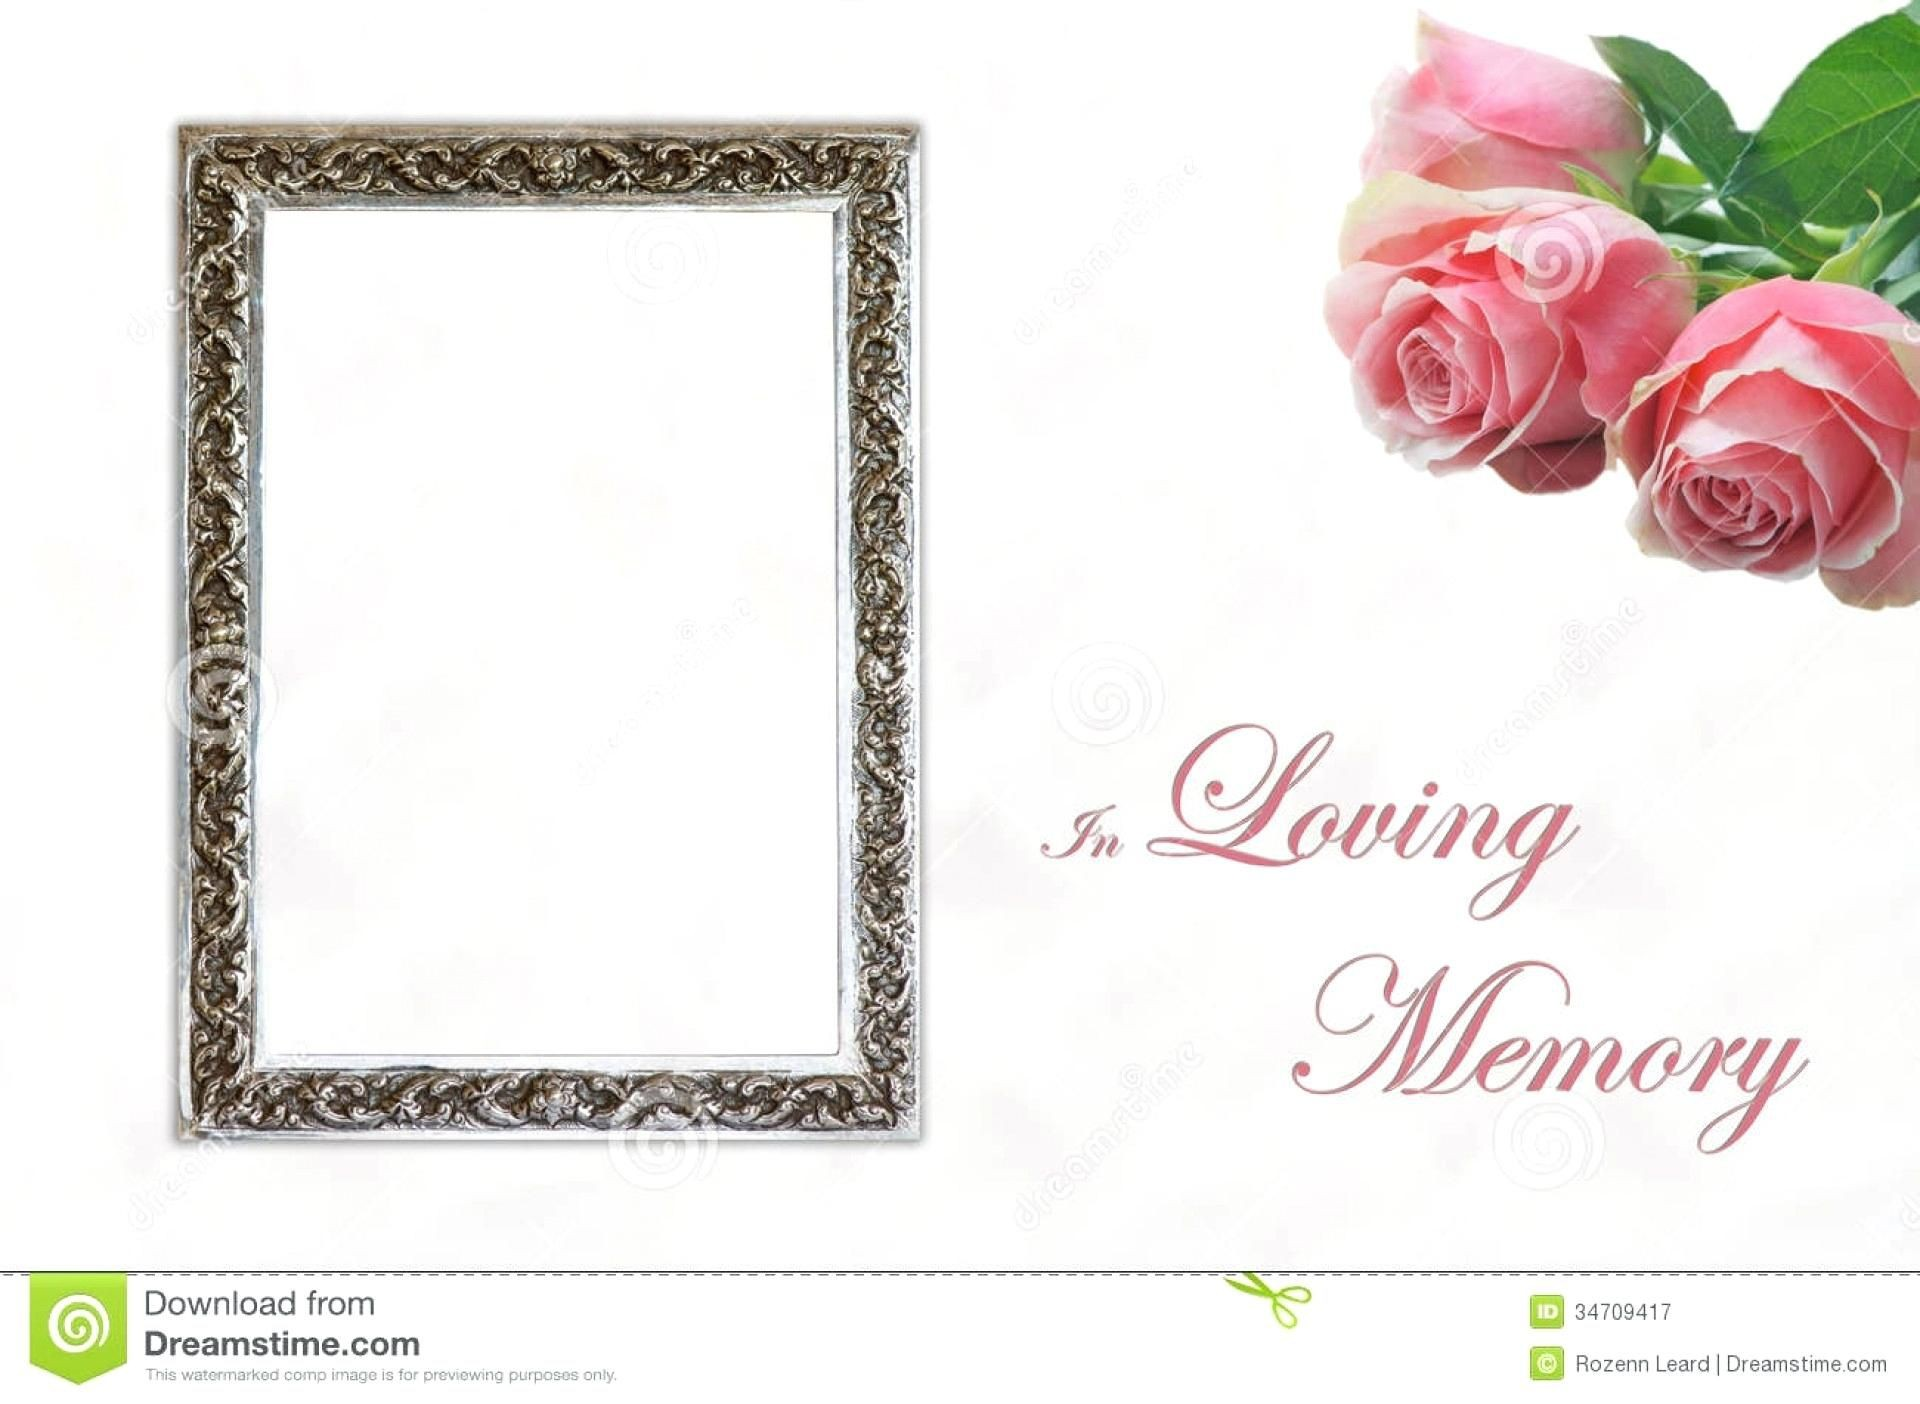 008 Excellent In Loving Memory Template Idea  Templates Word1920